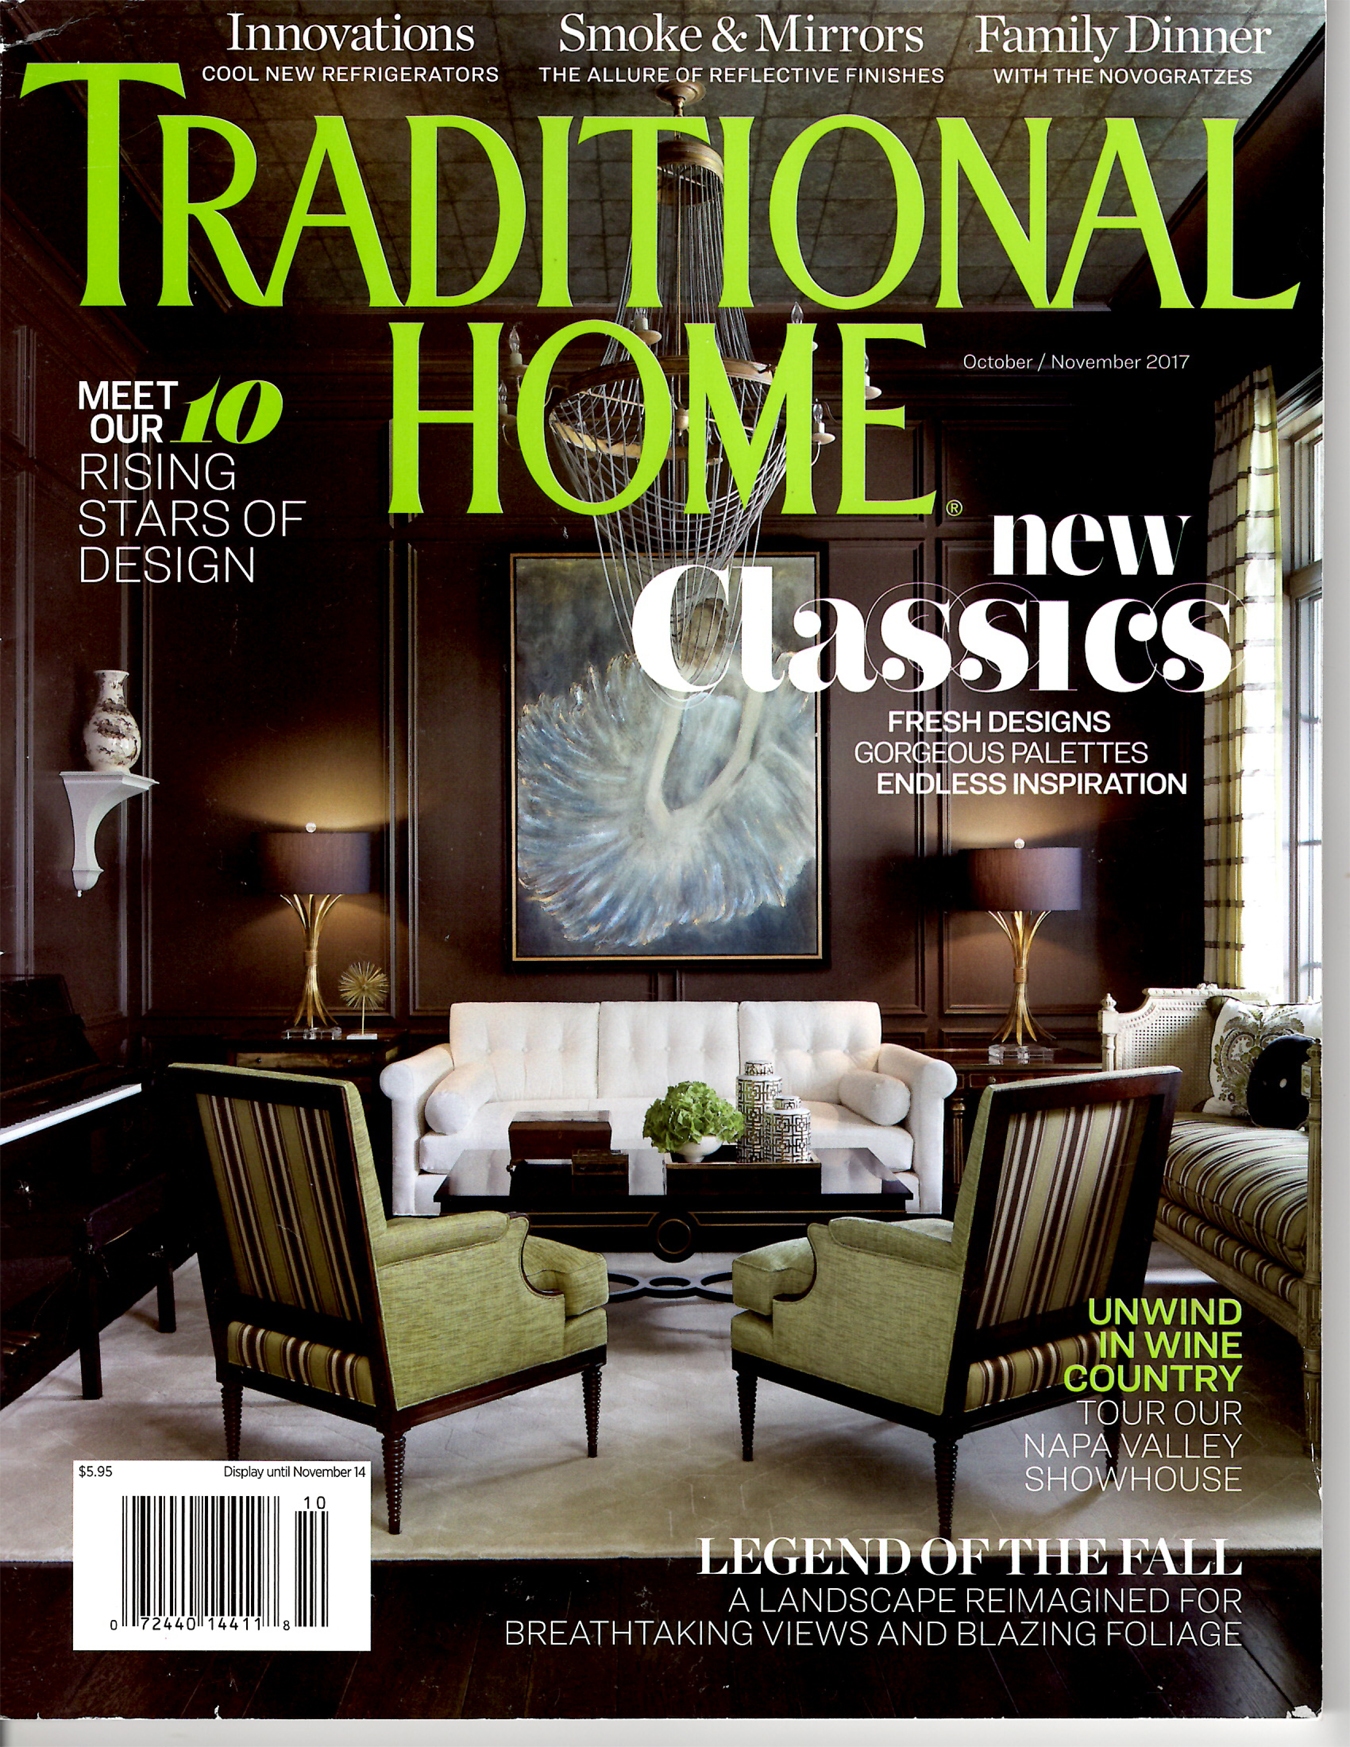 TTtradhomefeature1017cover.jpg